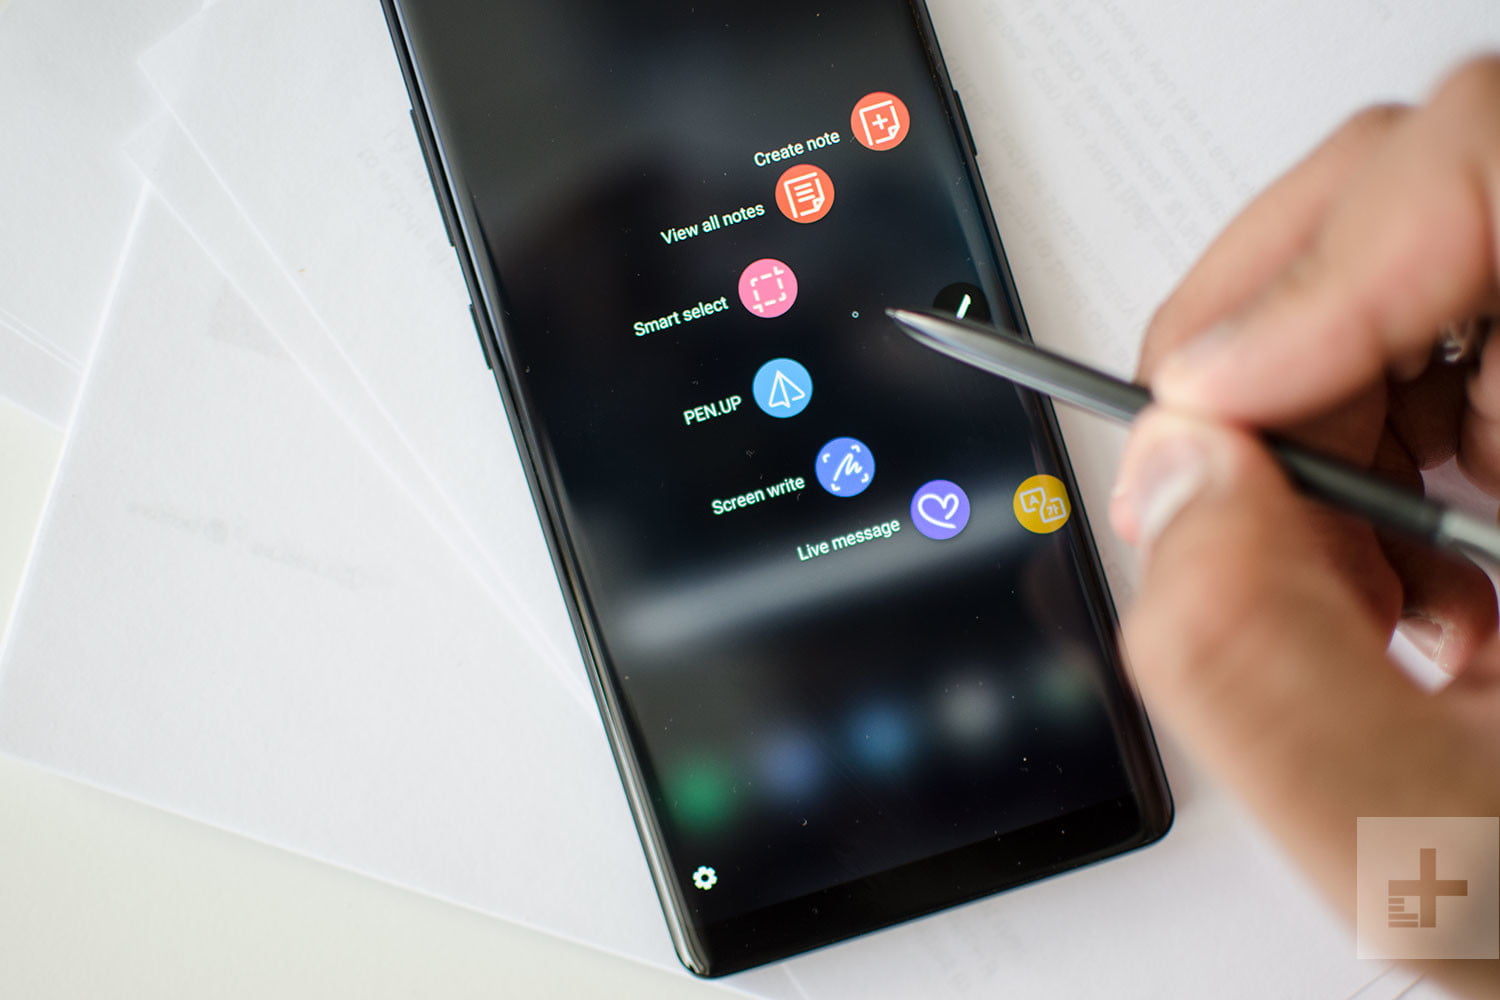 Samsung Galaxy Note 8 review app switch